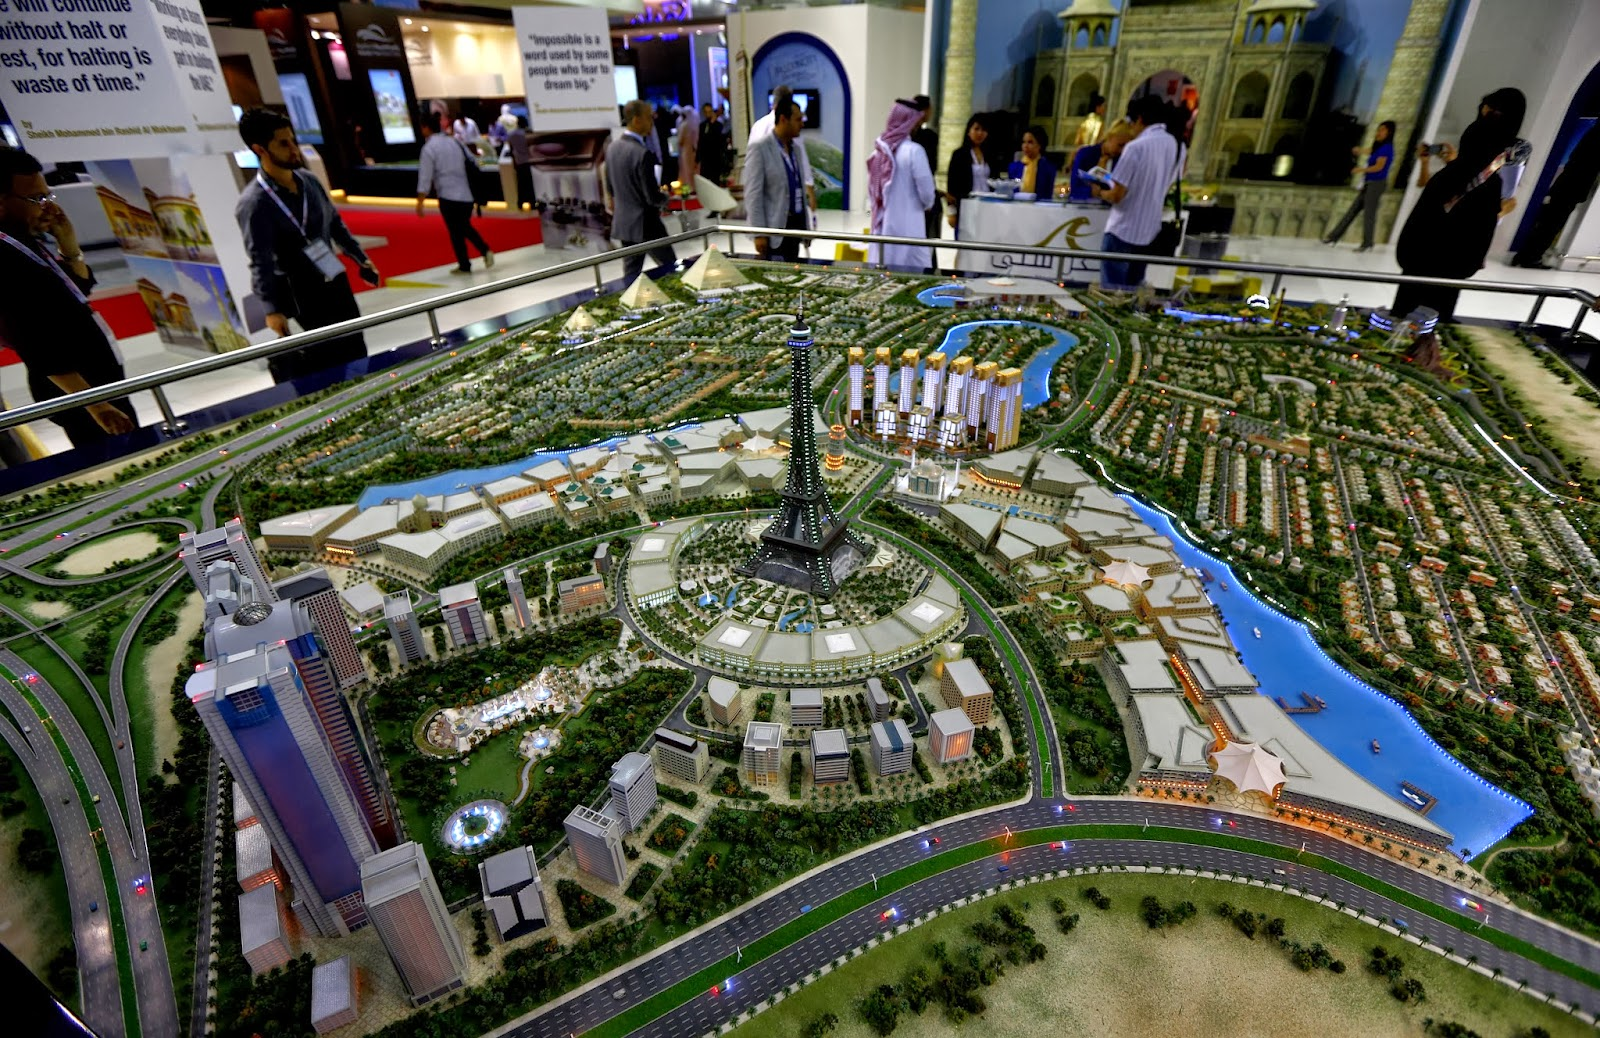 Annual, Architecture, Business, Cityscape Global, Crises, Dubai, Economy, Emaar  properties, Emirates, Exhibition, Falcon City of Wonders, Gulf, History, India, Model, Property, Show, Taj Mahal, UAE,